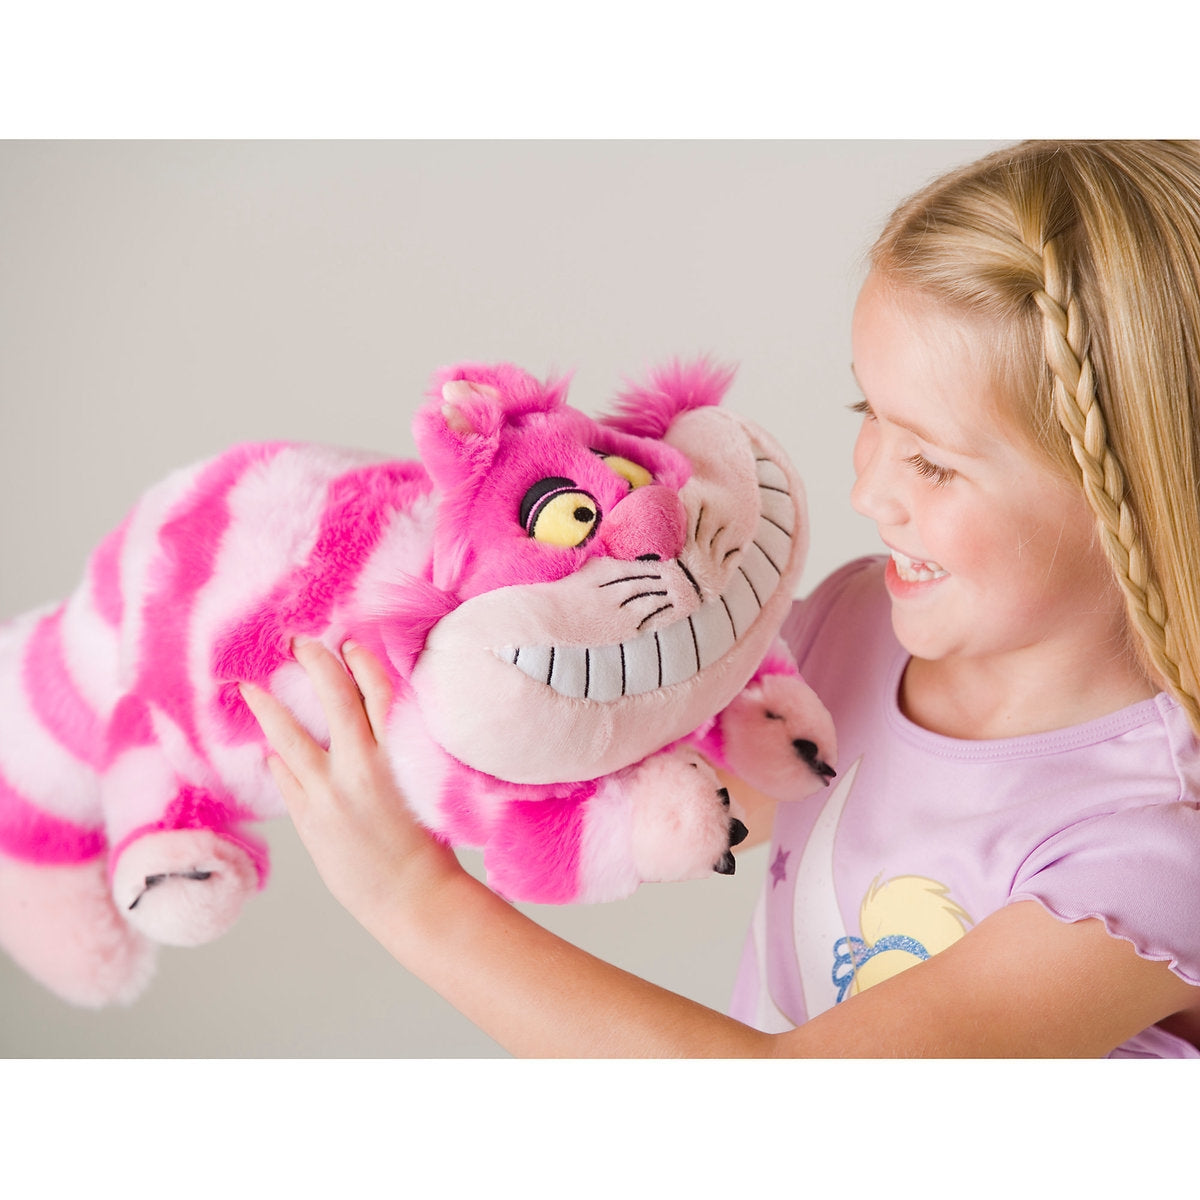 Cheshire Cat Plush - Alice in Wonderland - Medium